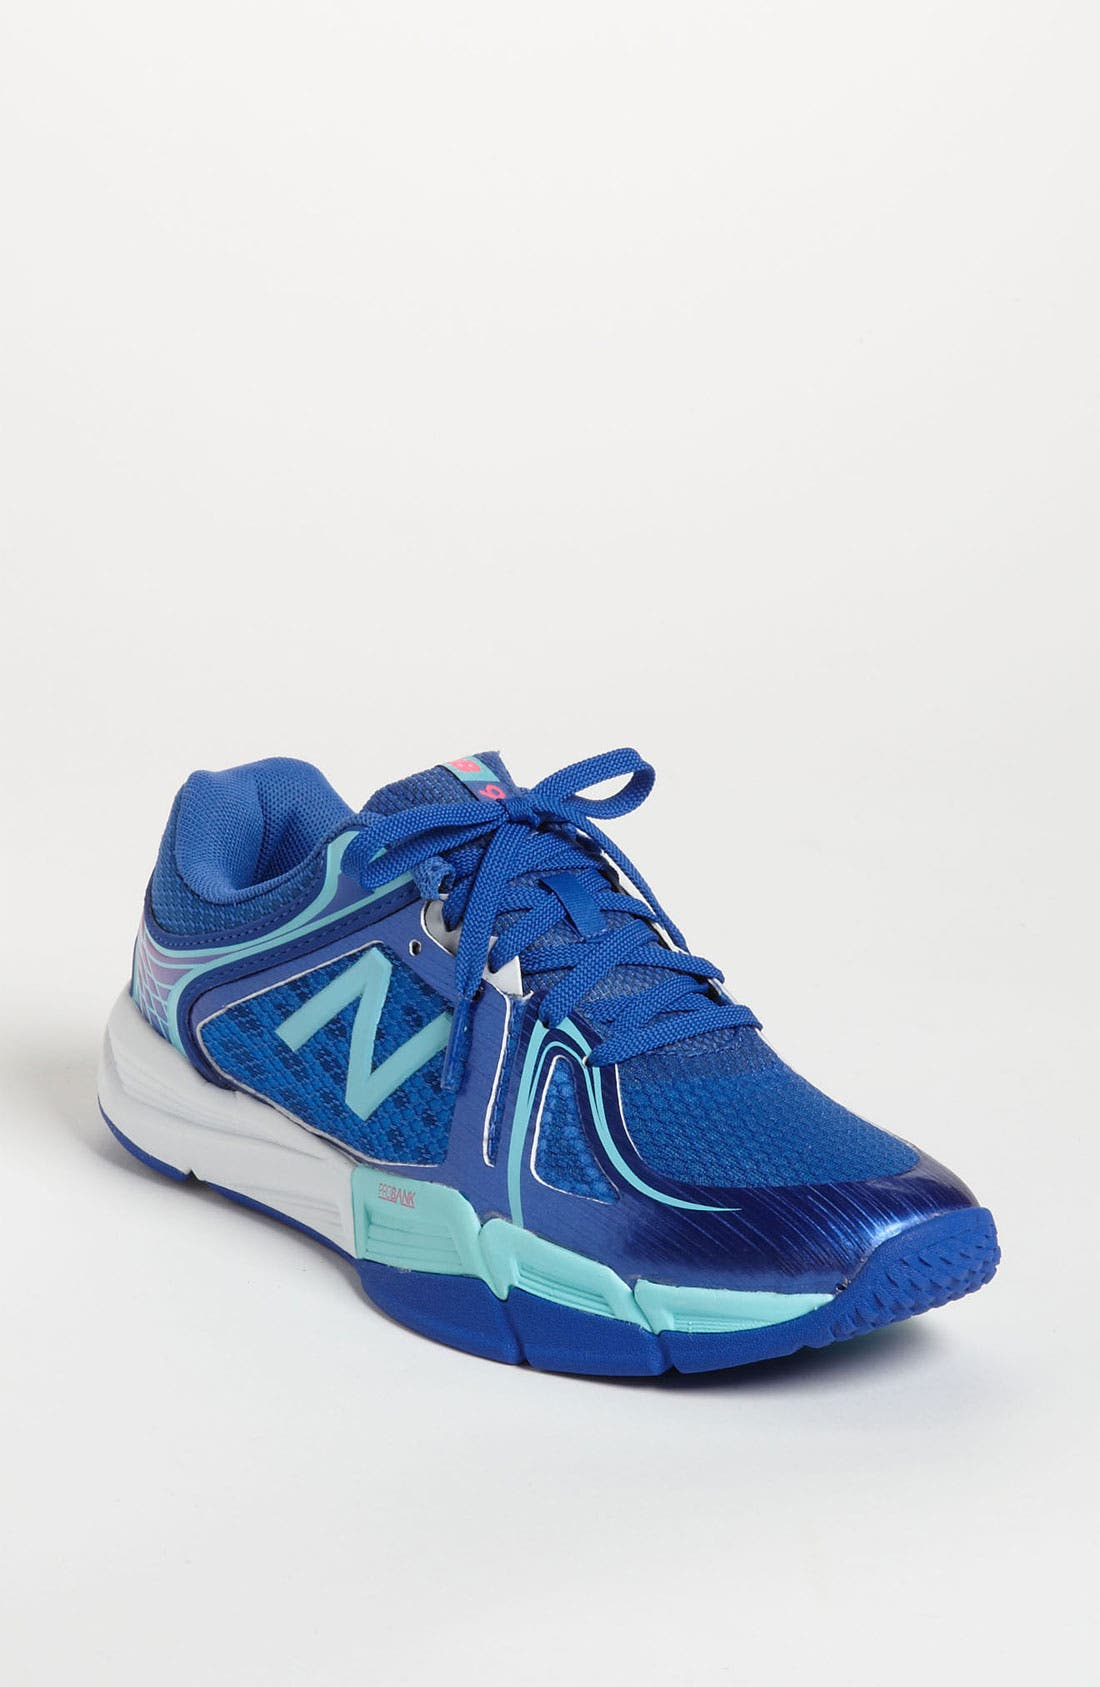 Main Image - New Balance 'Probank 997' Training Shoe